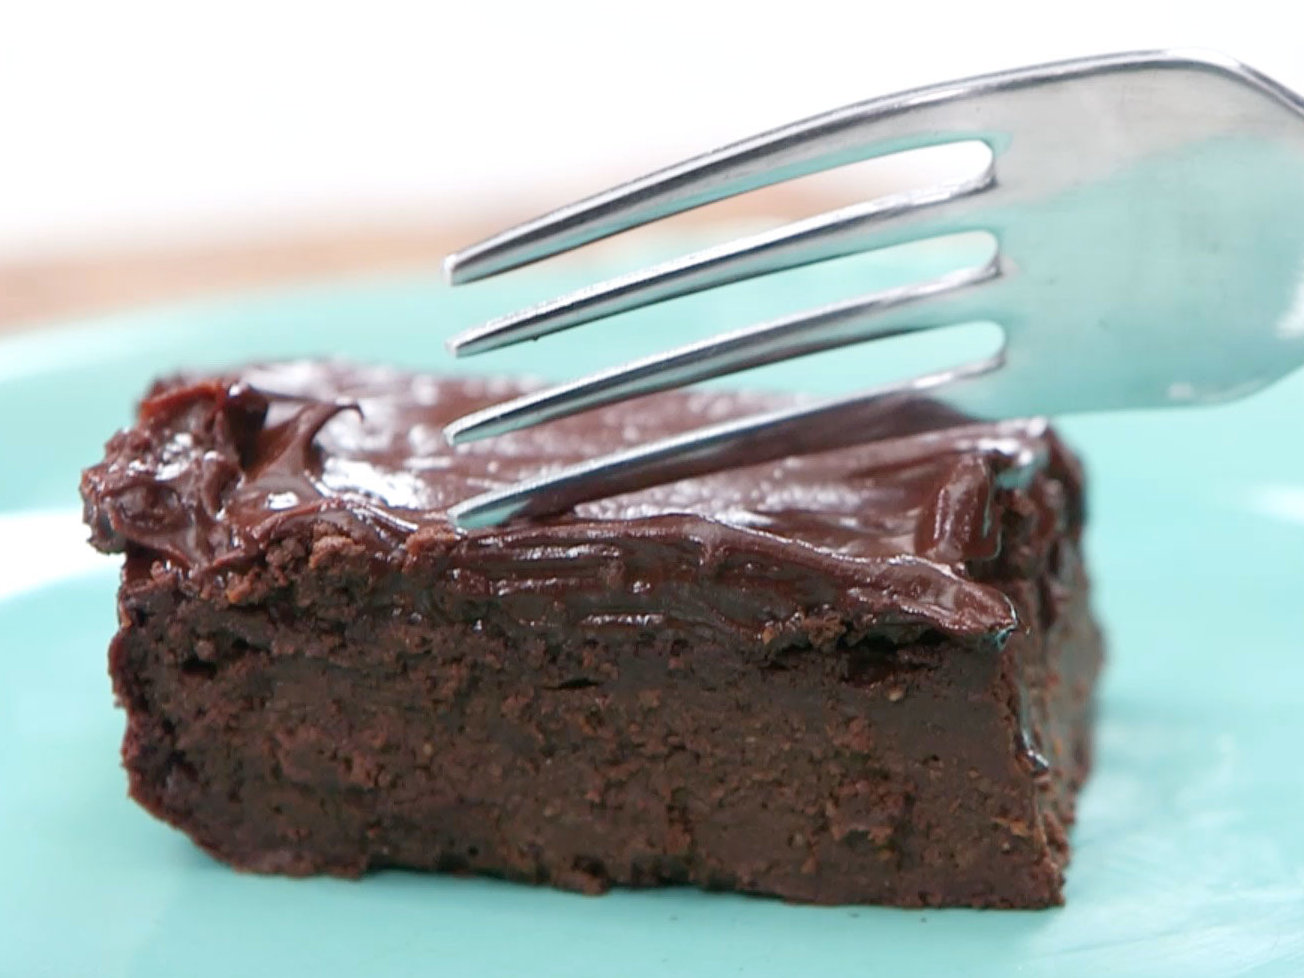 How to Make Avocado-Chocolate Frosting